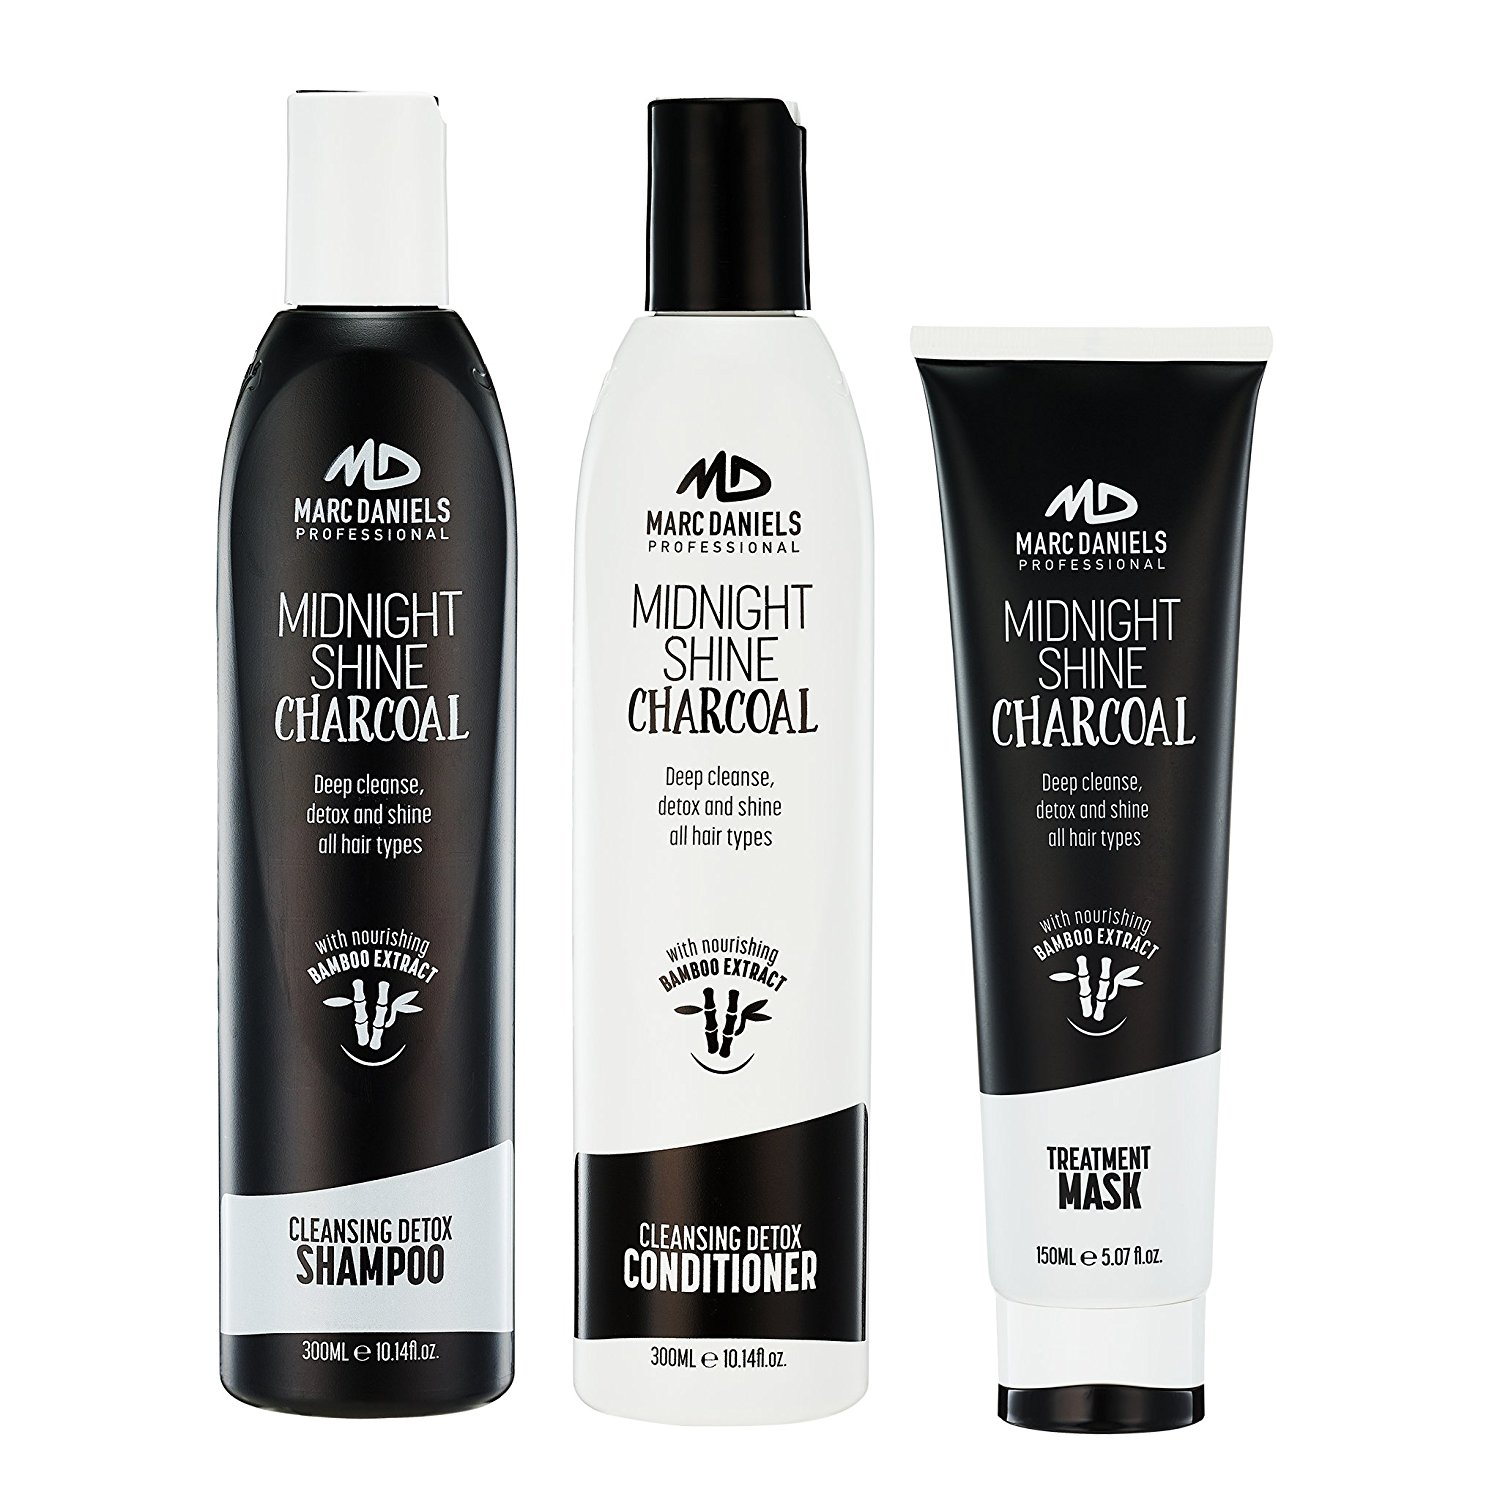 Activated Charcoal Clarifying Shampoo & Conditioner Set with Hair Mask Treatment. Sulfate Free, Deep Cleanse, Detox & Shine Restore for Color Treated, Oil, Damaged, Dry Hair